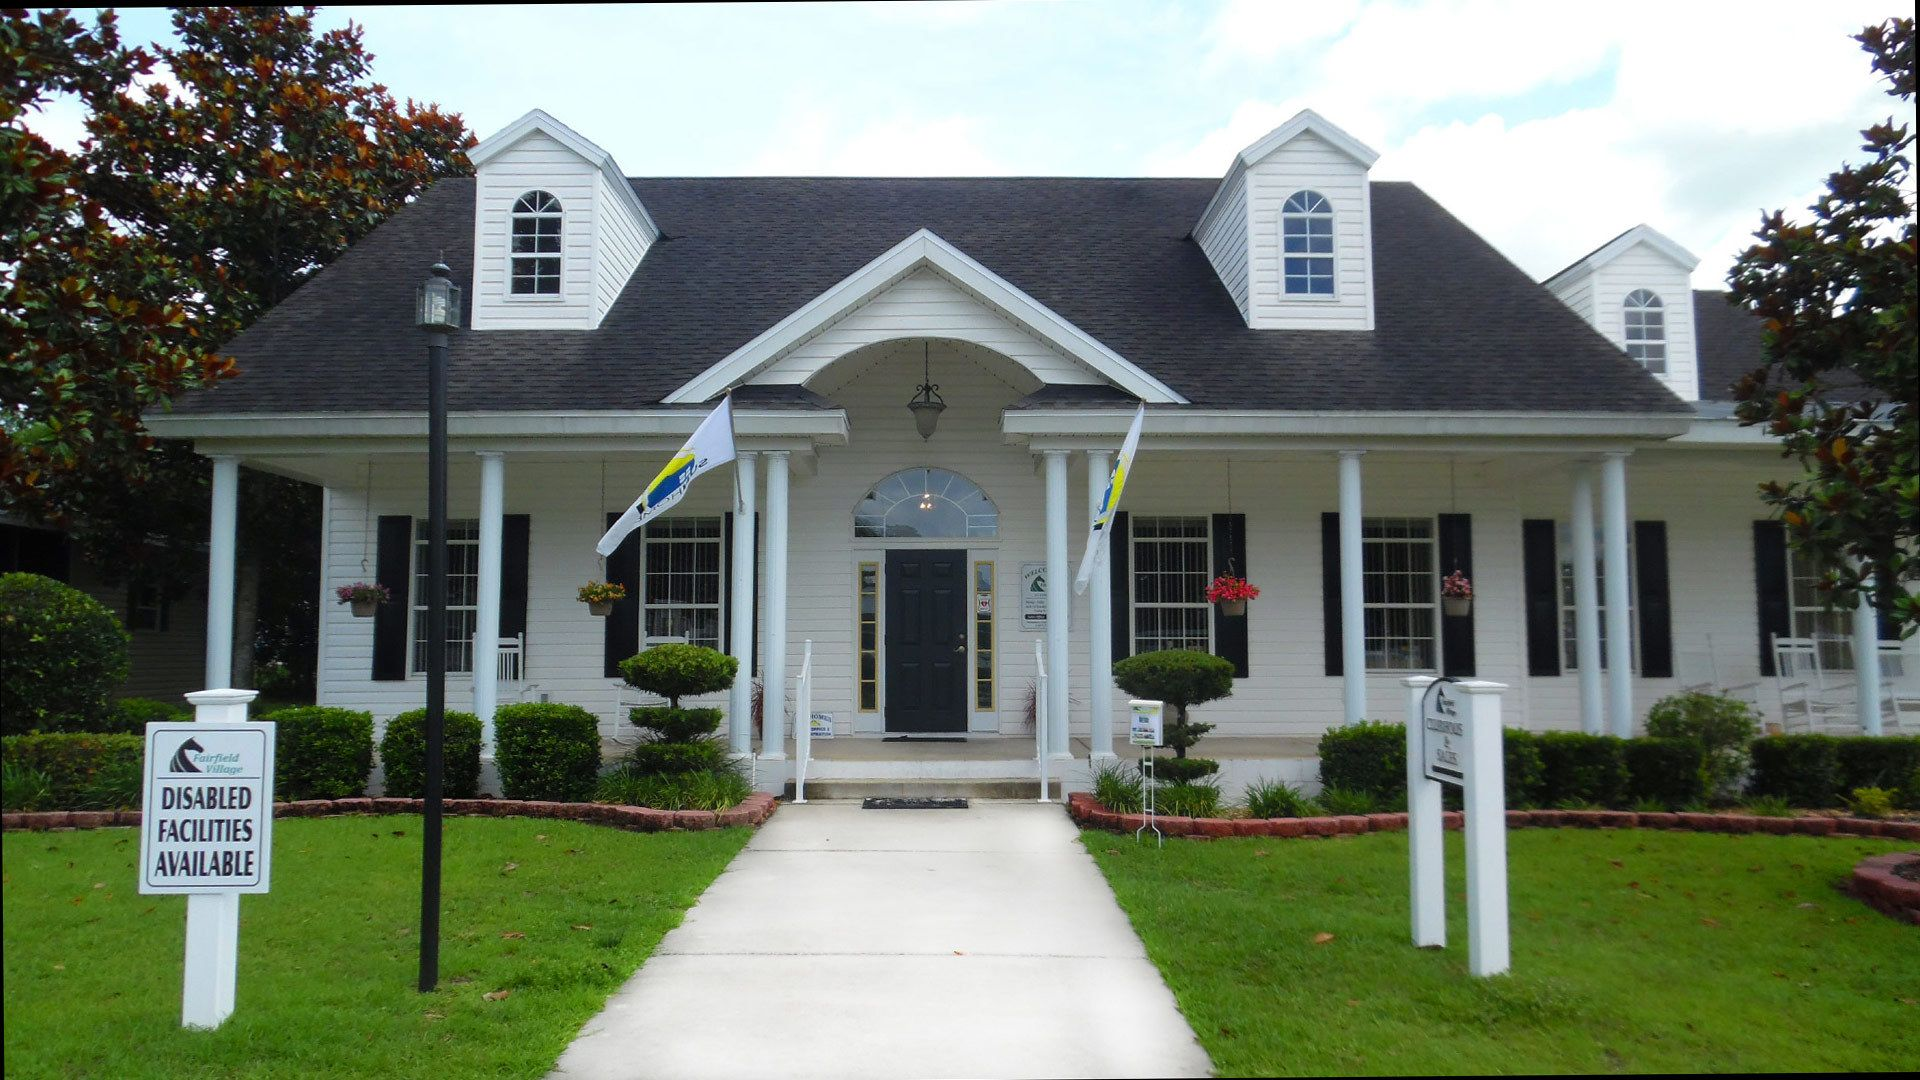 Fairfield Village 55+ Manufactured Homes Community Clubhouse in Ocala, FL